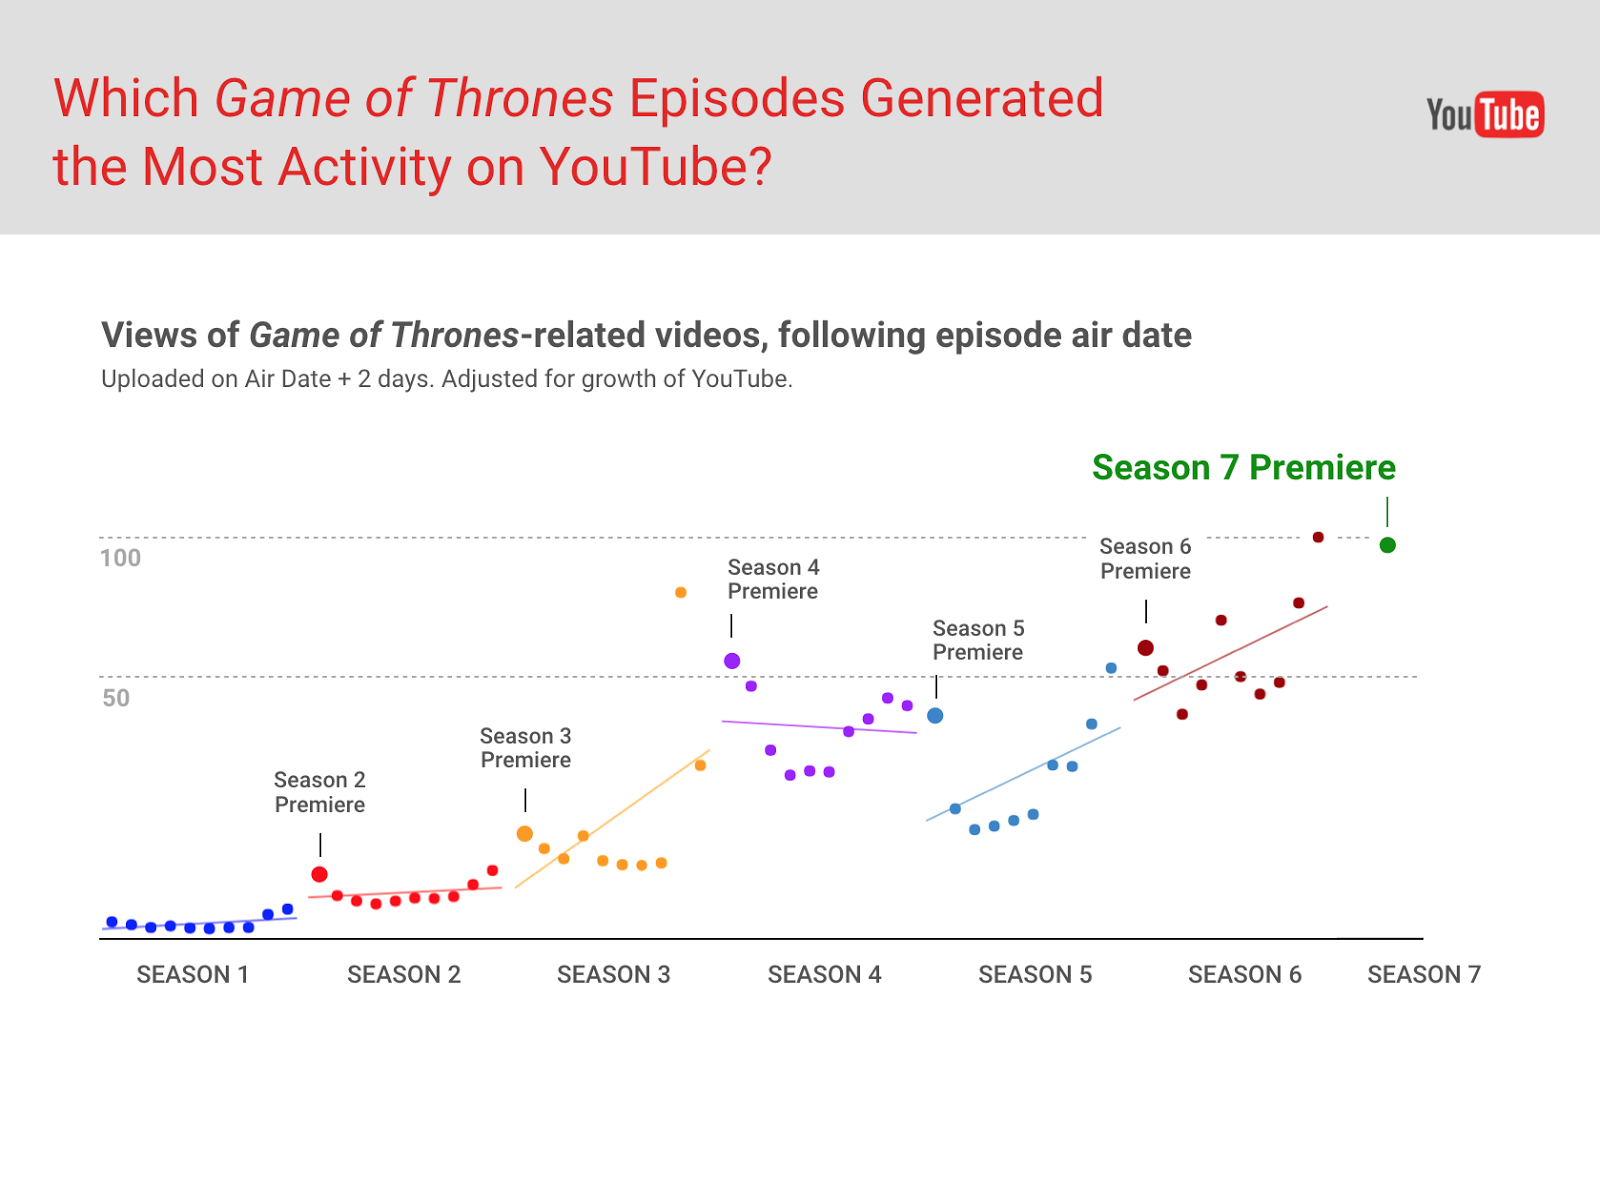 hight resolution of the season 7 premiere generated the most activity on youtube compared to any other premiere seasons 1 6